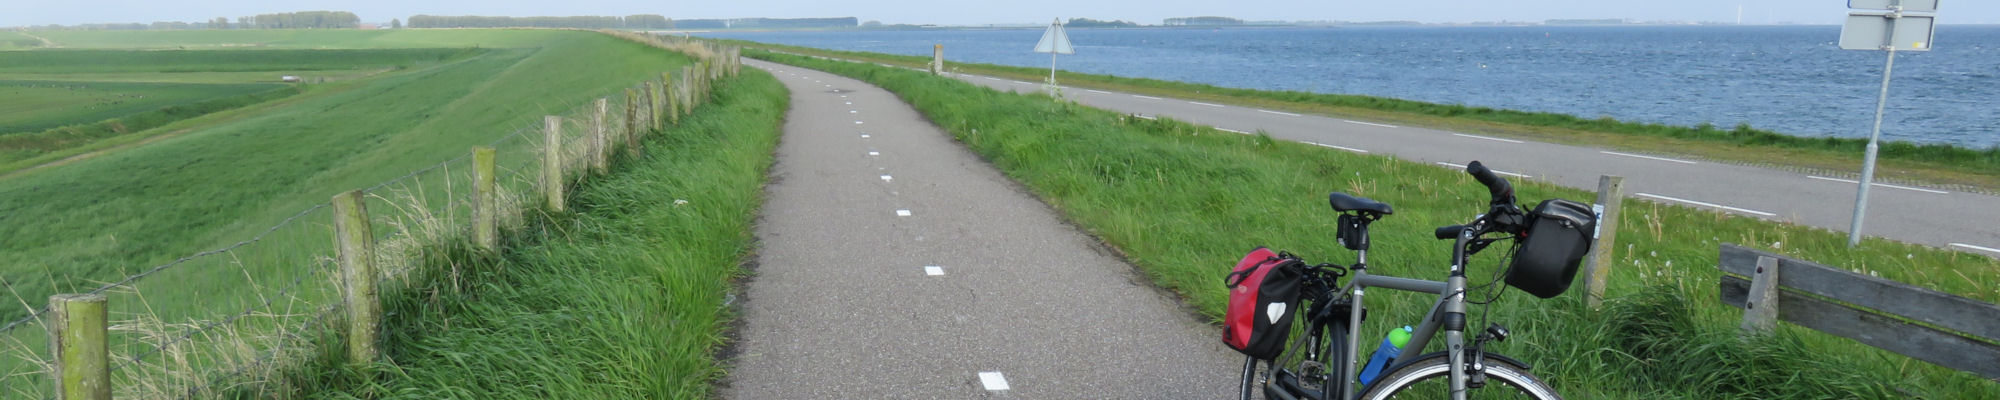 Cycling and safety in the Netherlands | Tulip Cycling